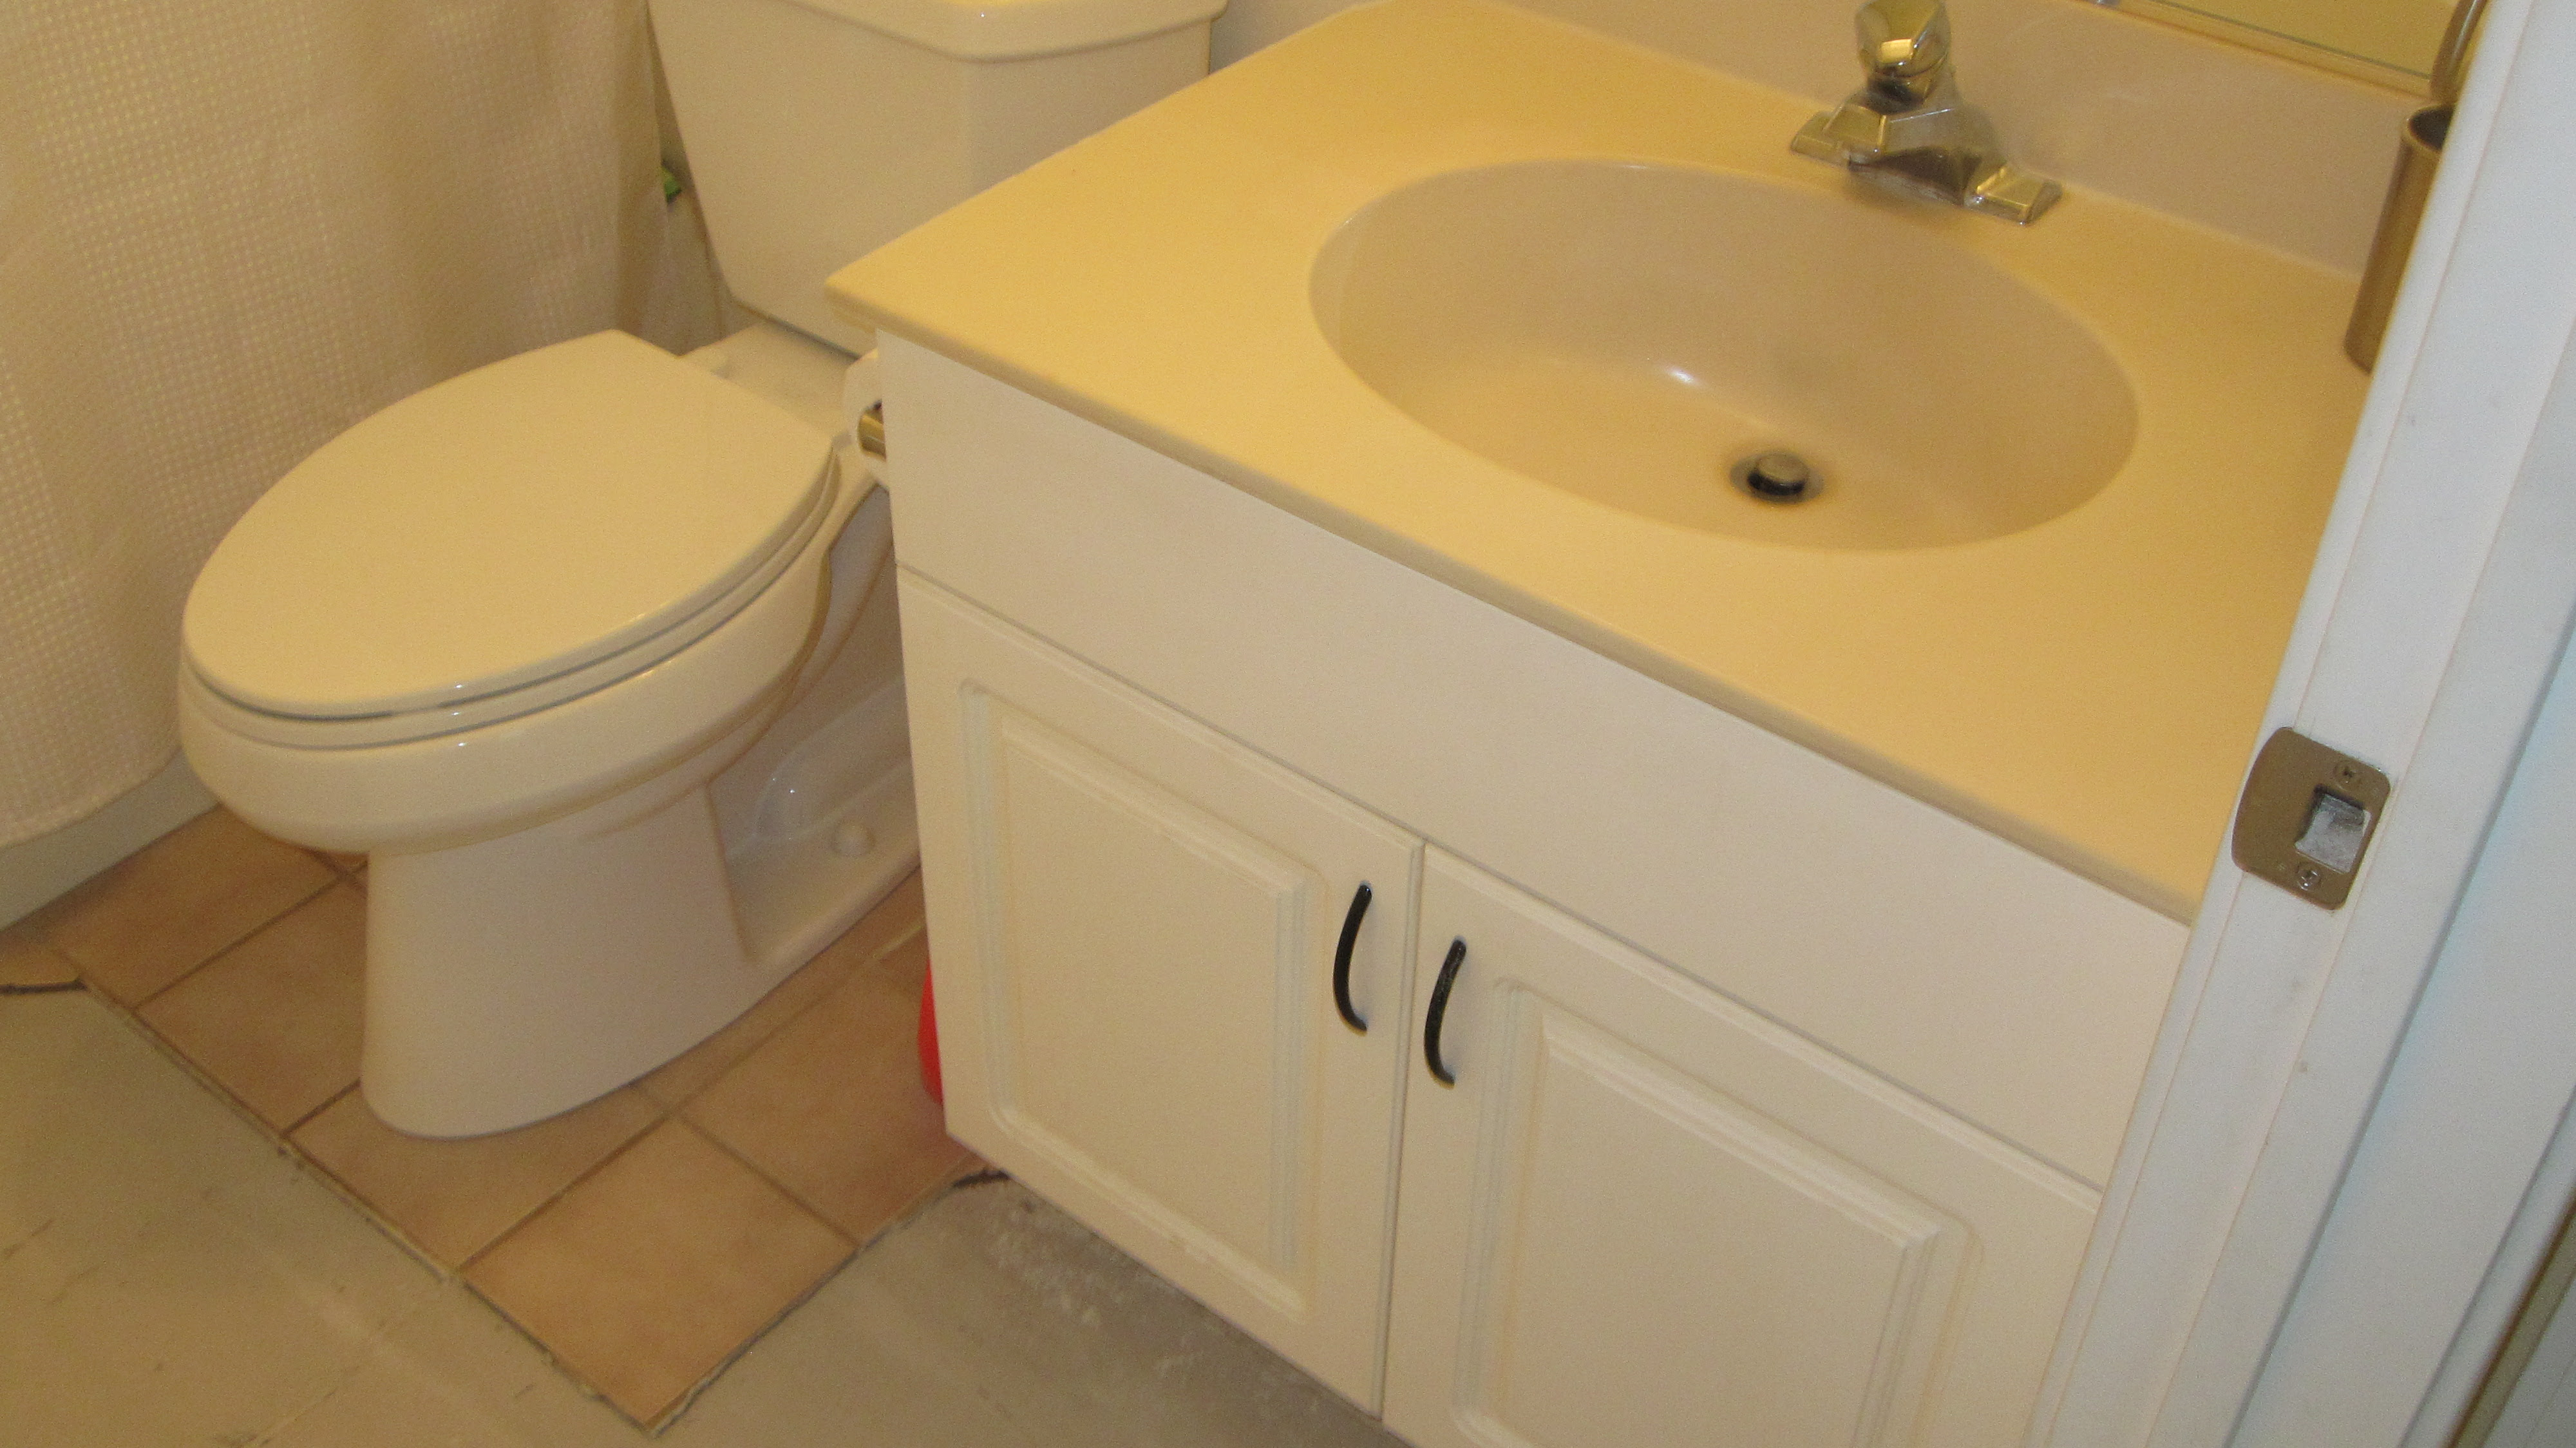 Cost To Build Bathroom Interior Design, How Much To Build A Bathroom